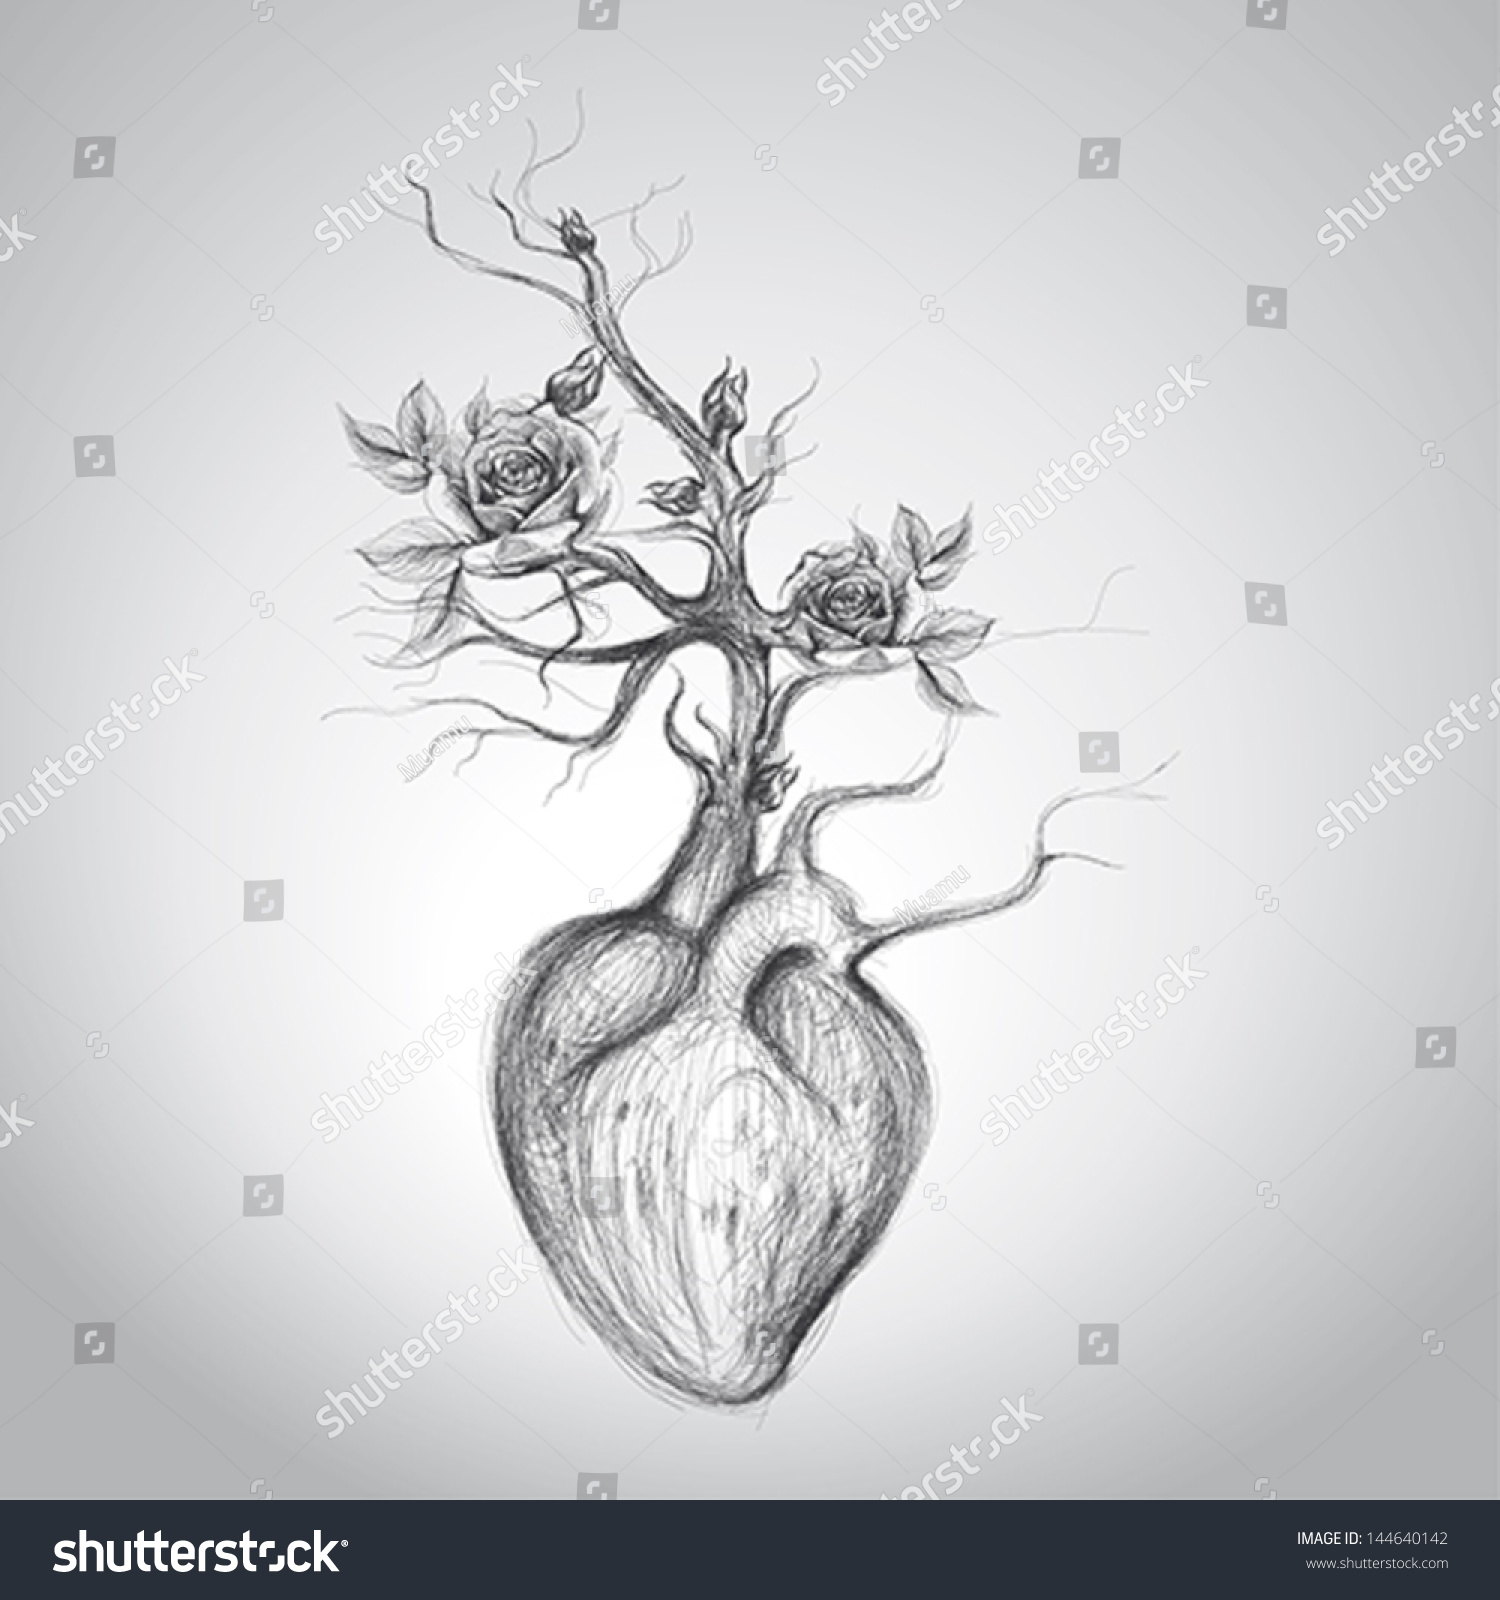 The heart is in blossom surreal romantic sketch